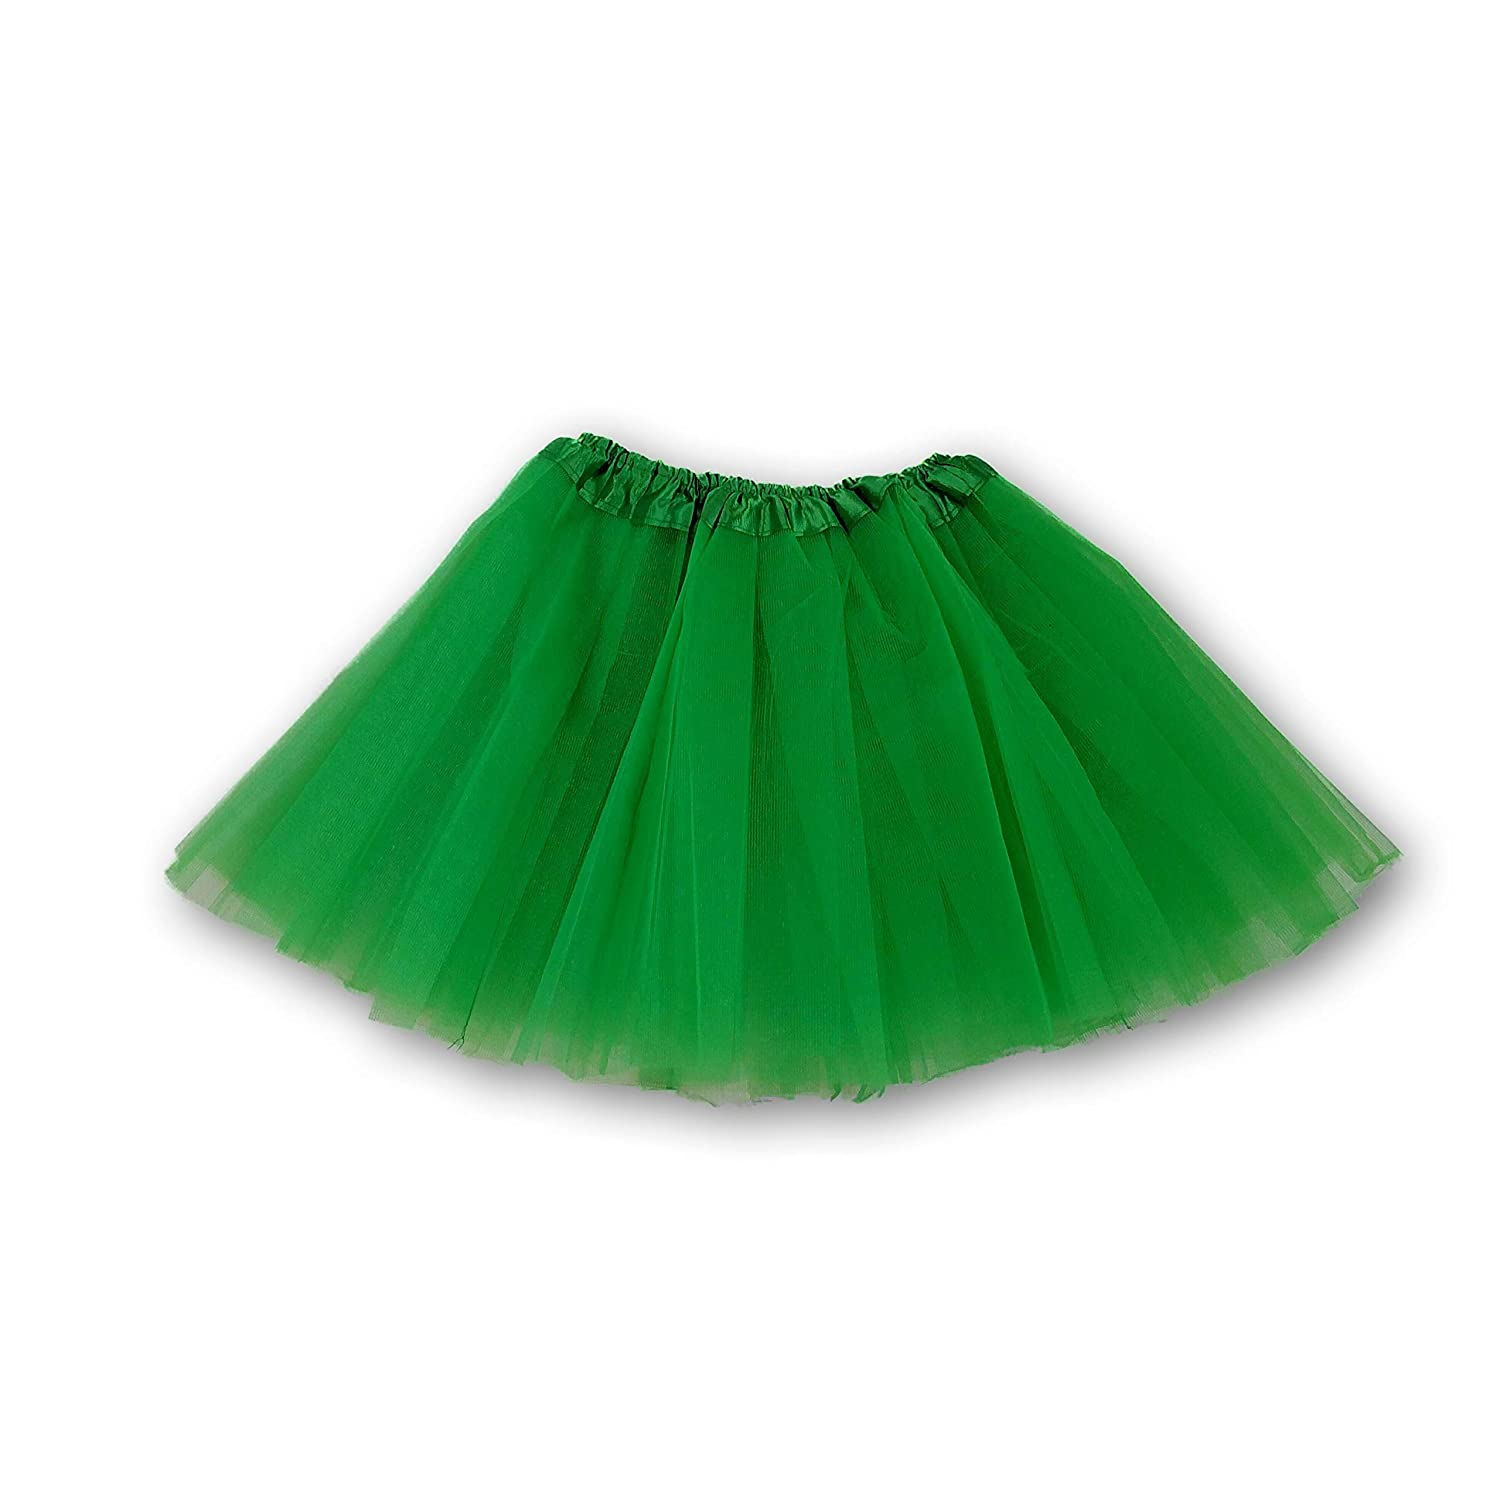 The Hair Bow Company Little Girls Baby & Toddler Tulle Tutu Skirt for 0-2 Years